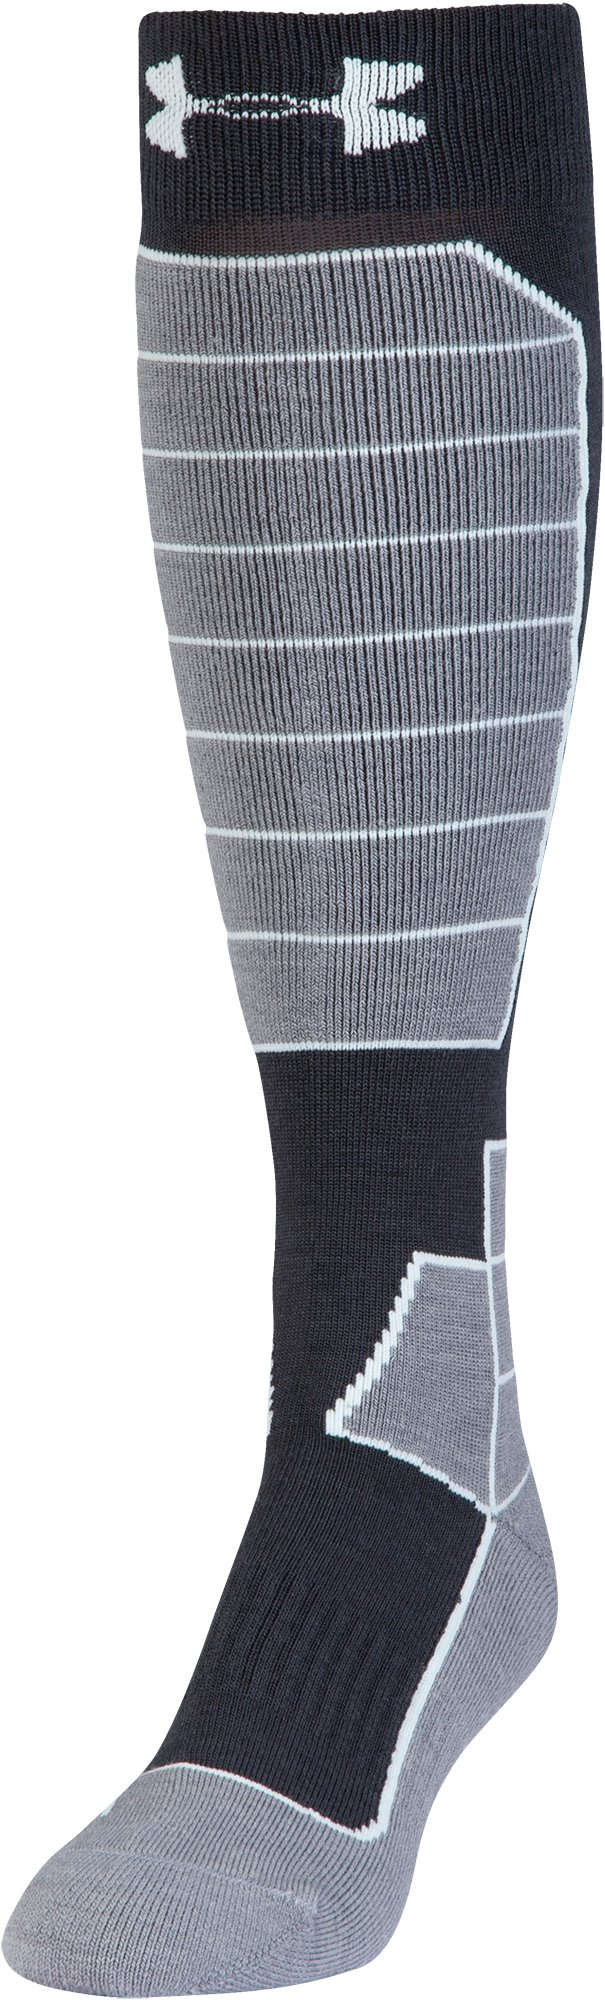 Women's UA Mountain Performance Over-The-Calf Socks, ANTHRACITE